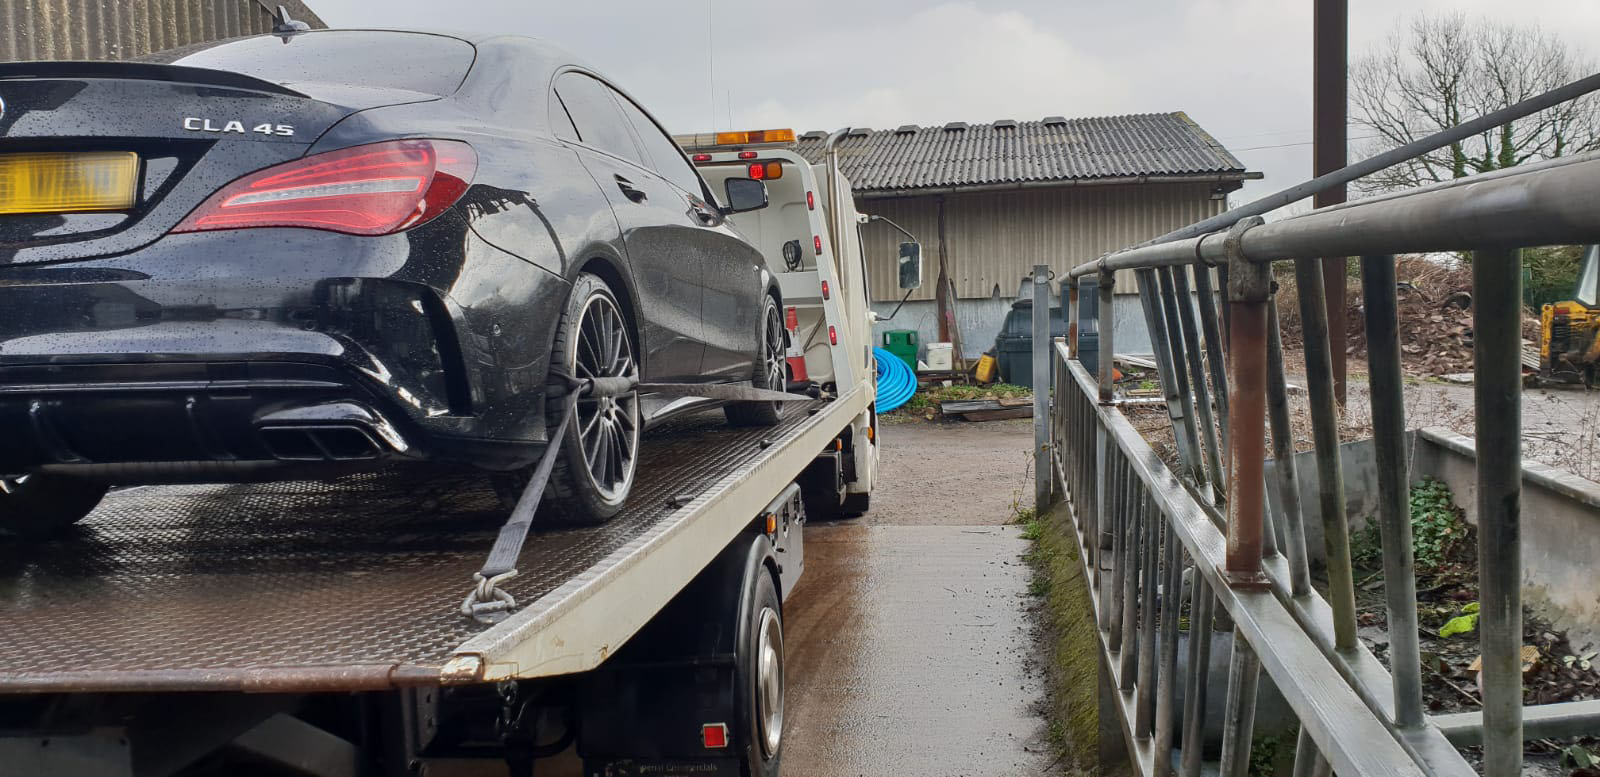 Rescuing, transporting and recycling cars